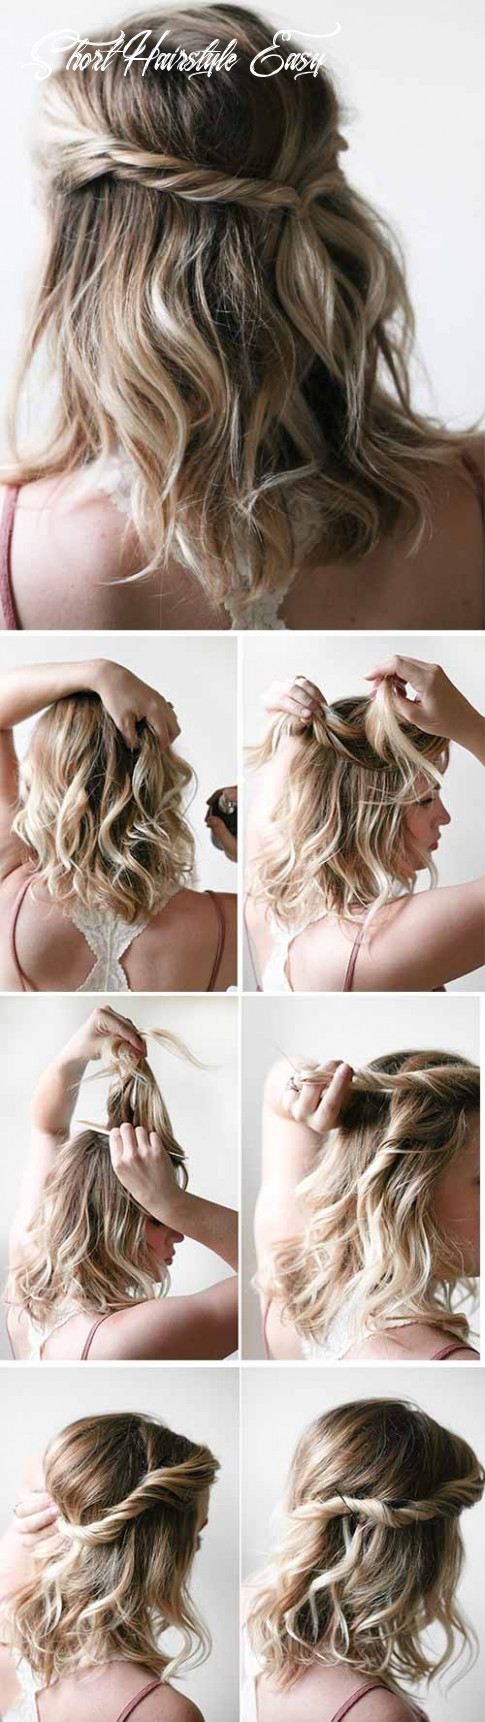 9 incredible diy short hairstyles a step by step guide short hairstyle easy